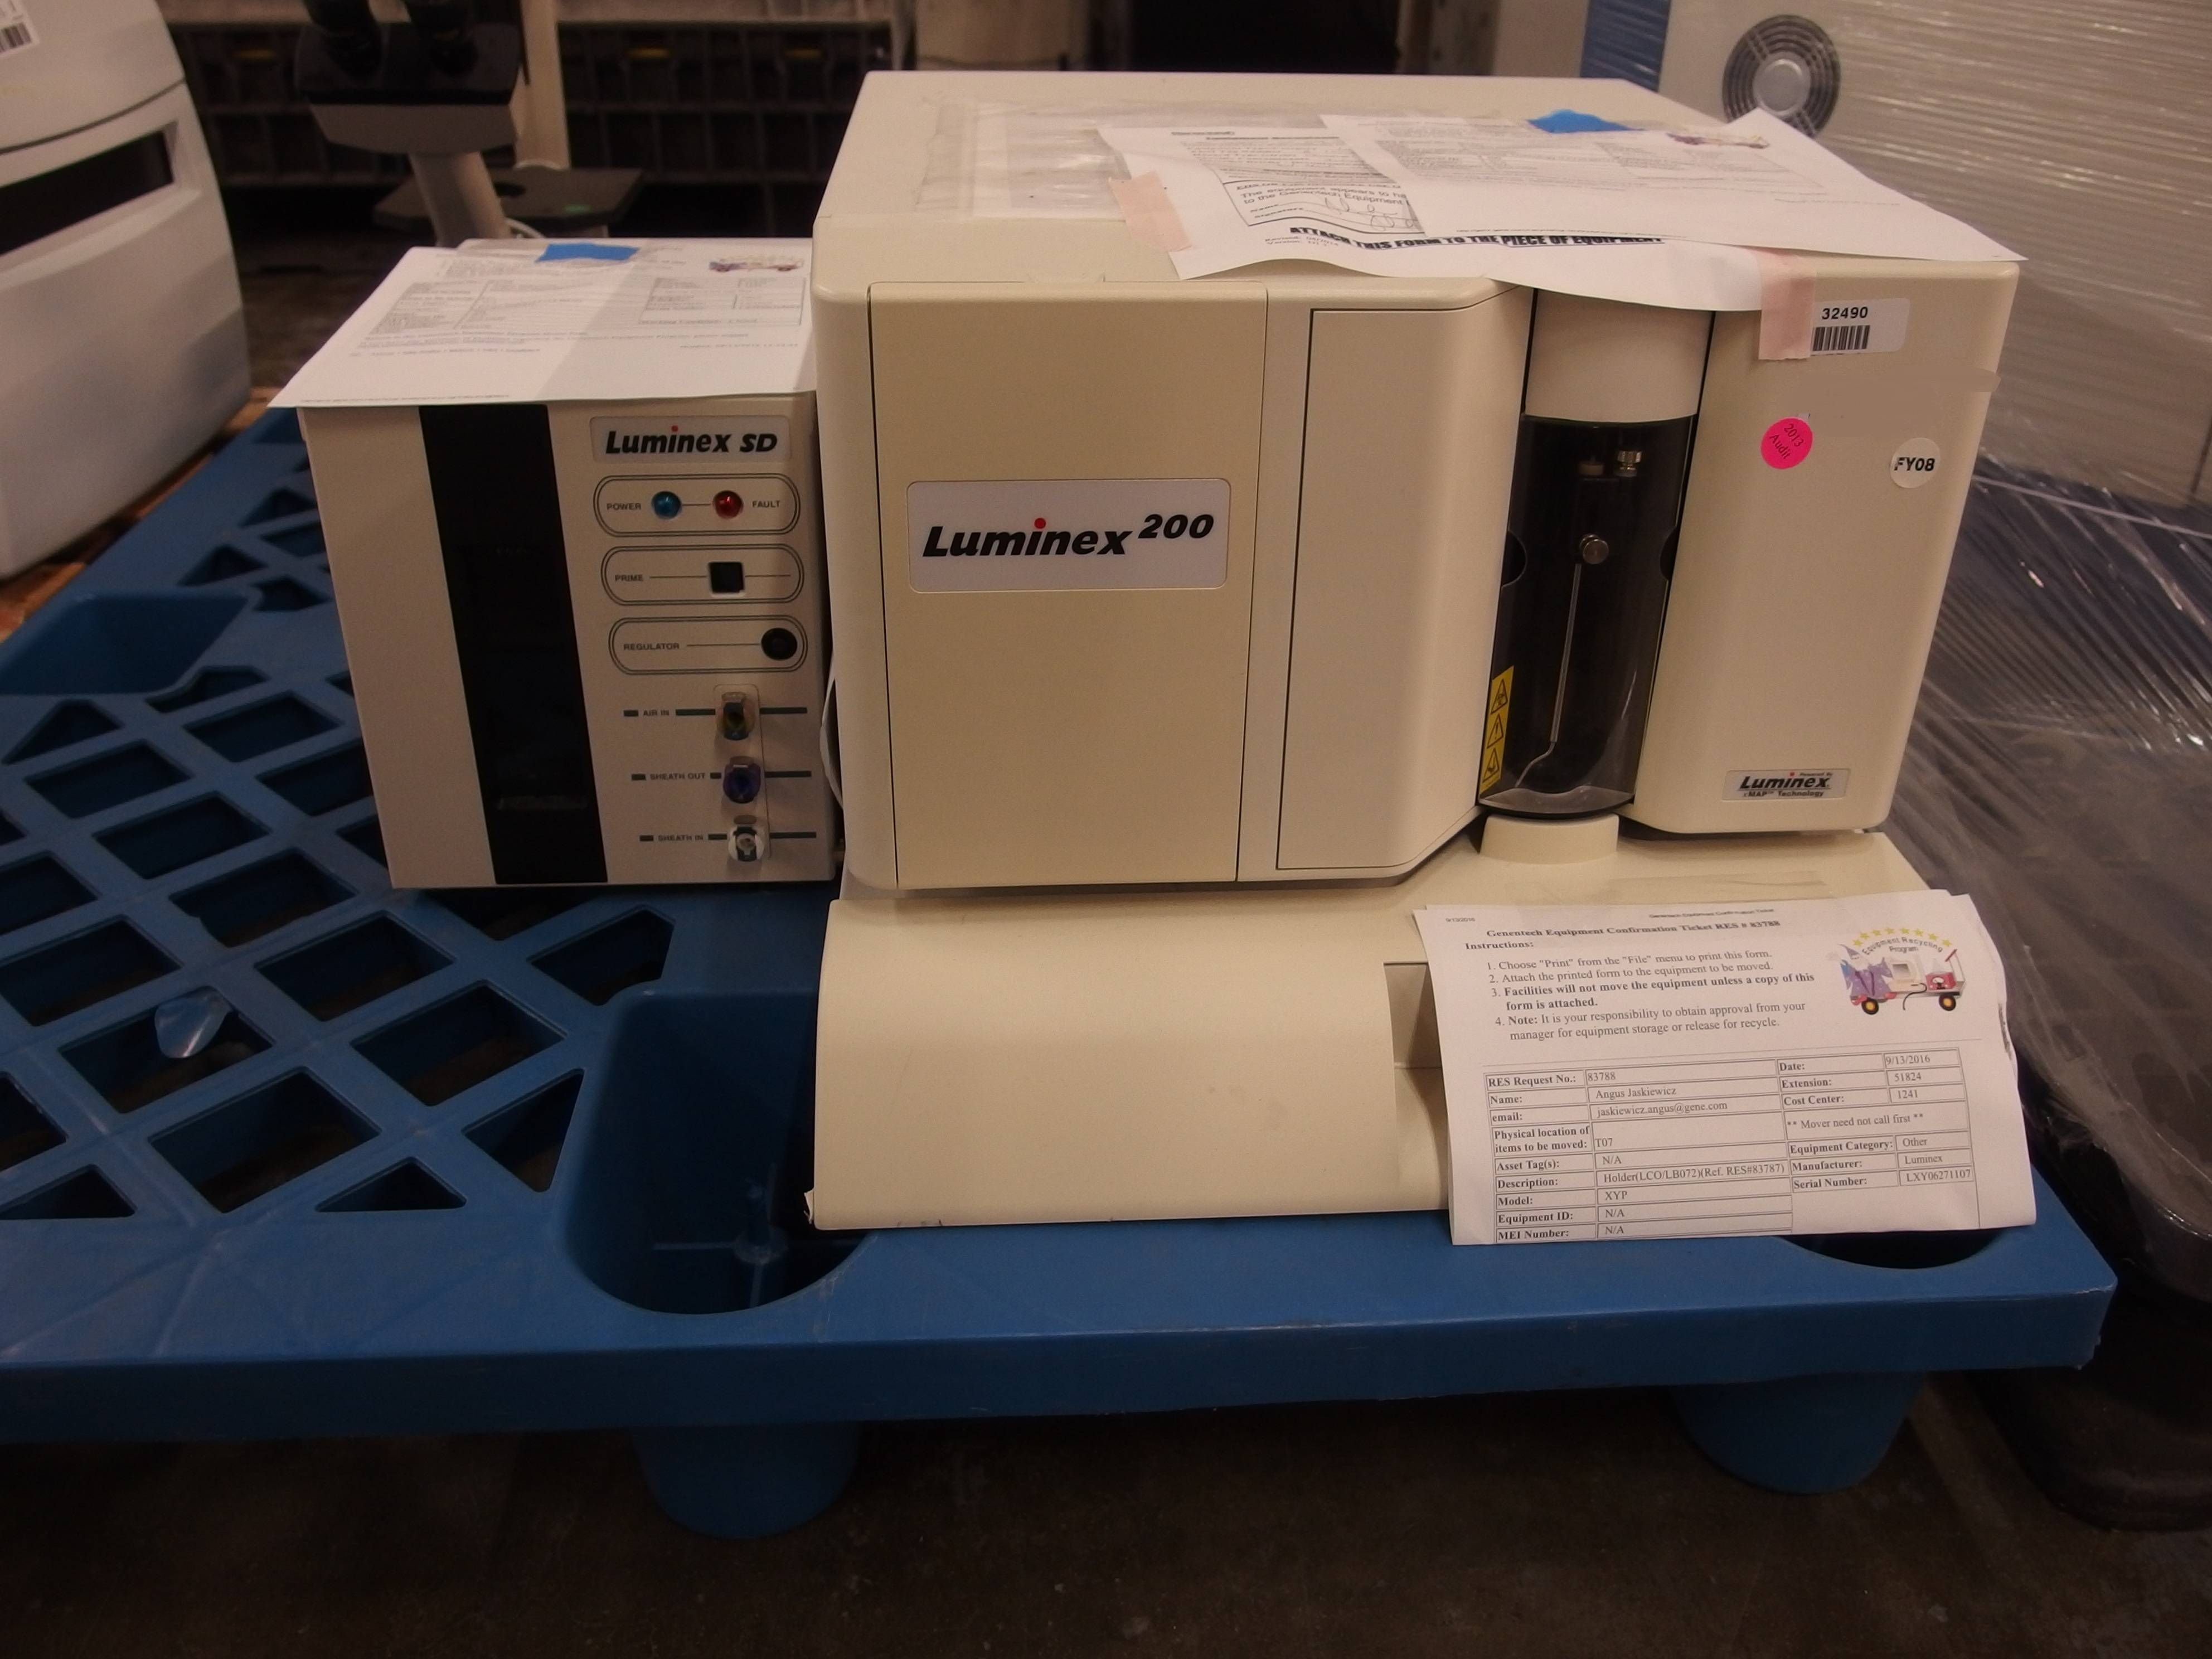 Luminex 200 Flow Cytometer with SD Sheath Delivery System